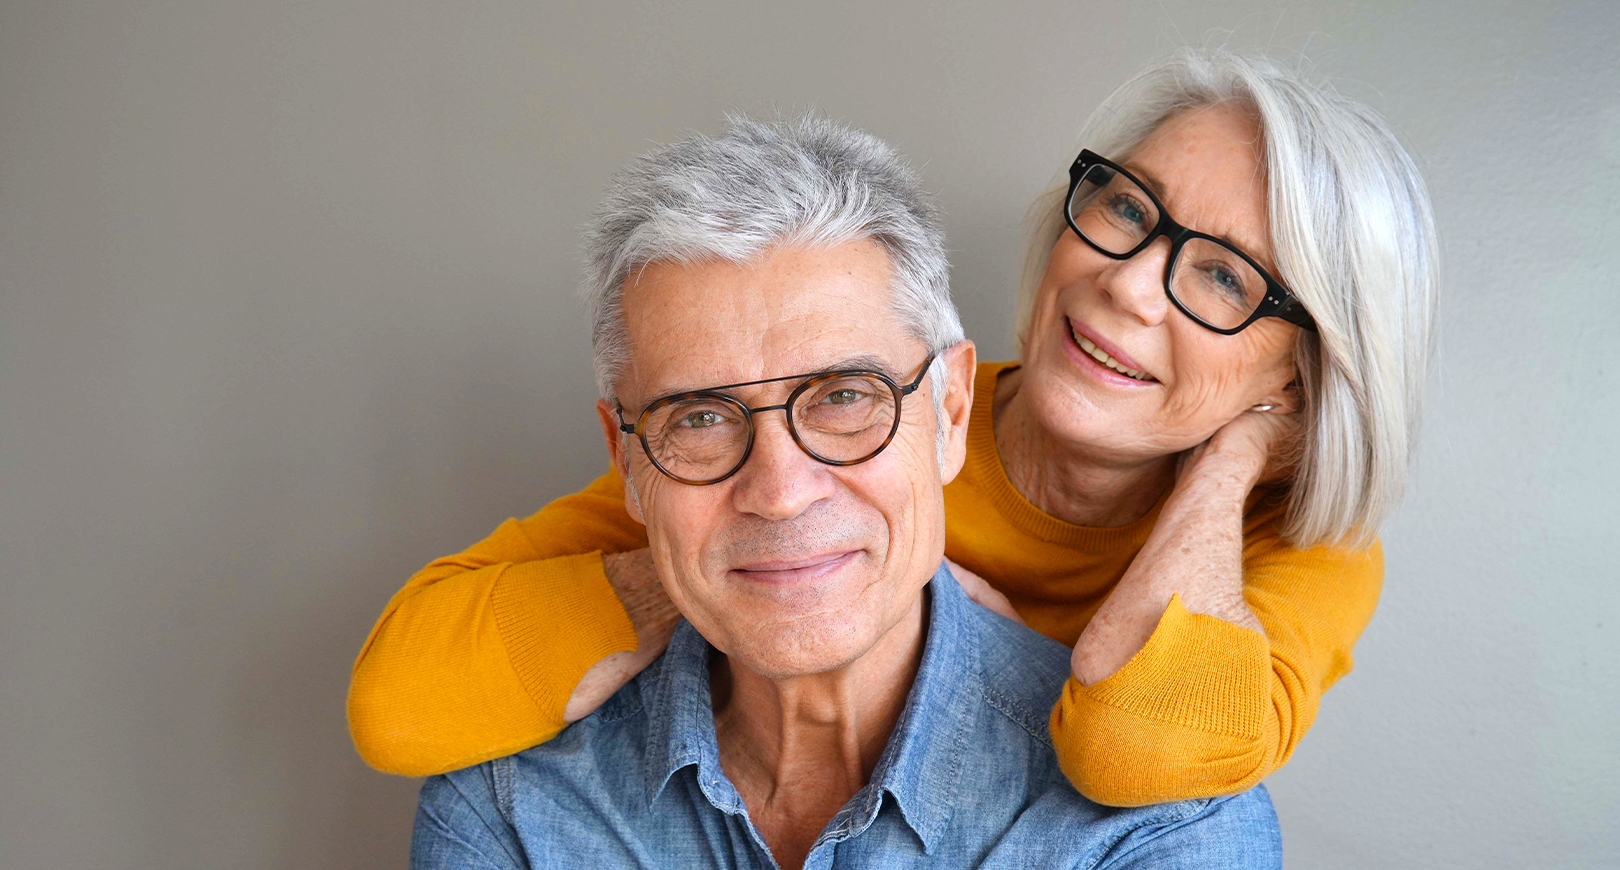 Mature man and woman wearing glasses